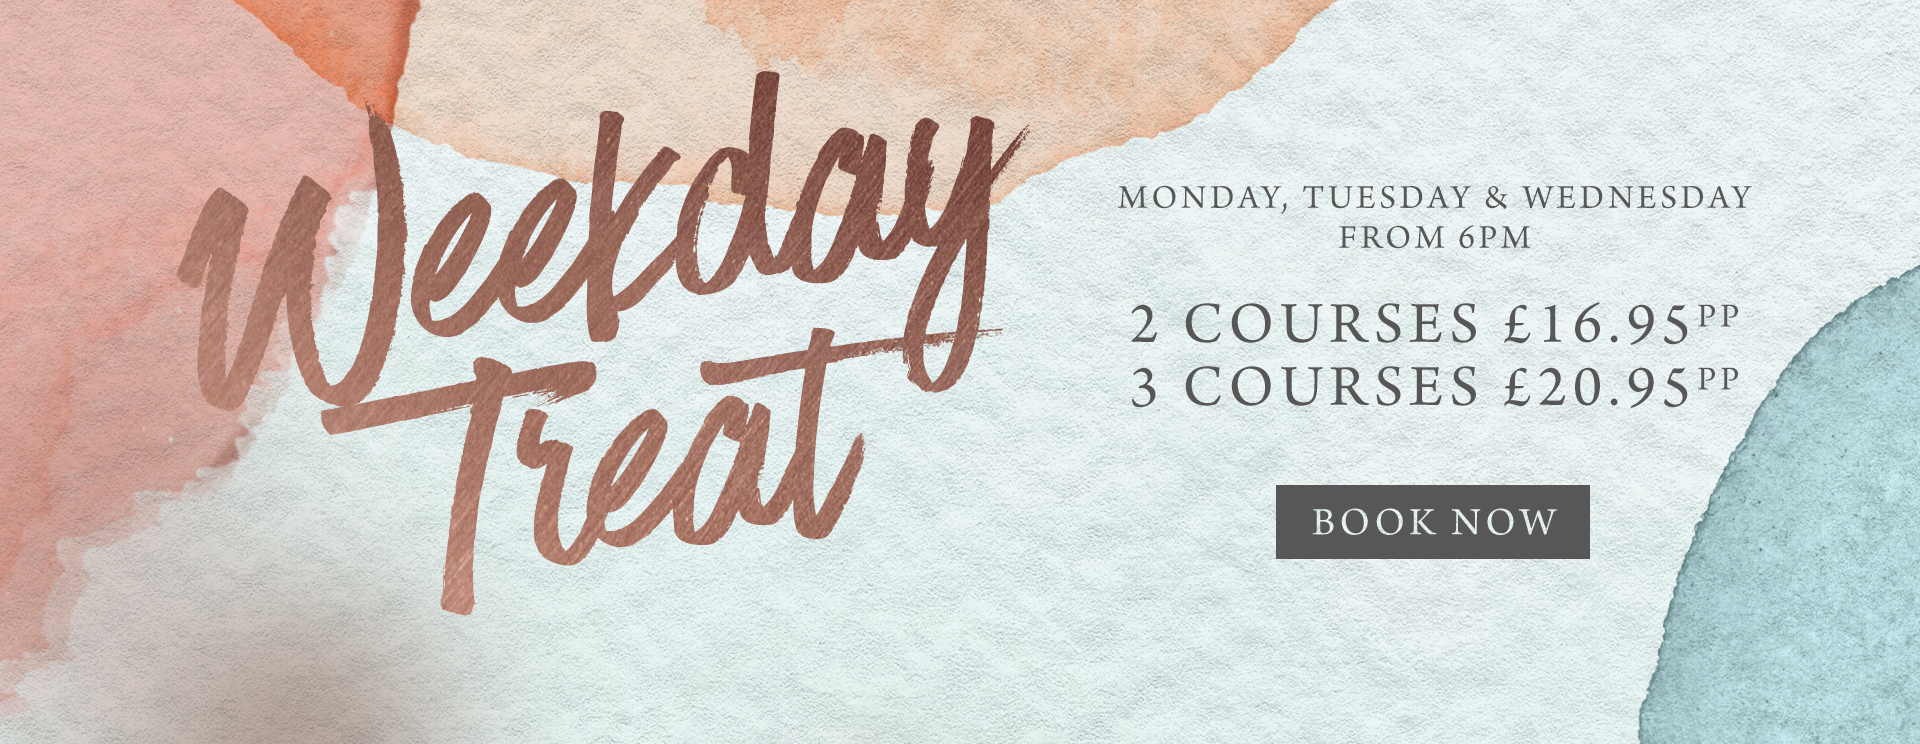 Weekday treat at The Horse & Groom - Book now